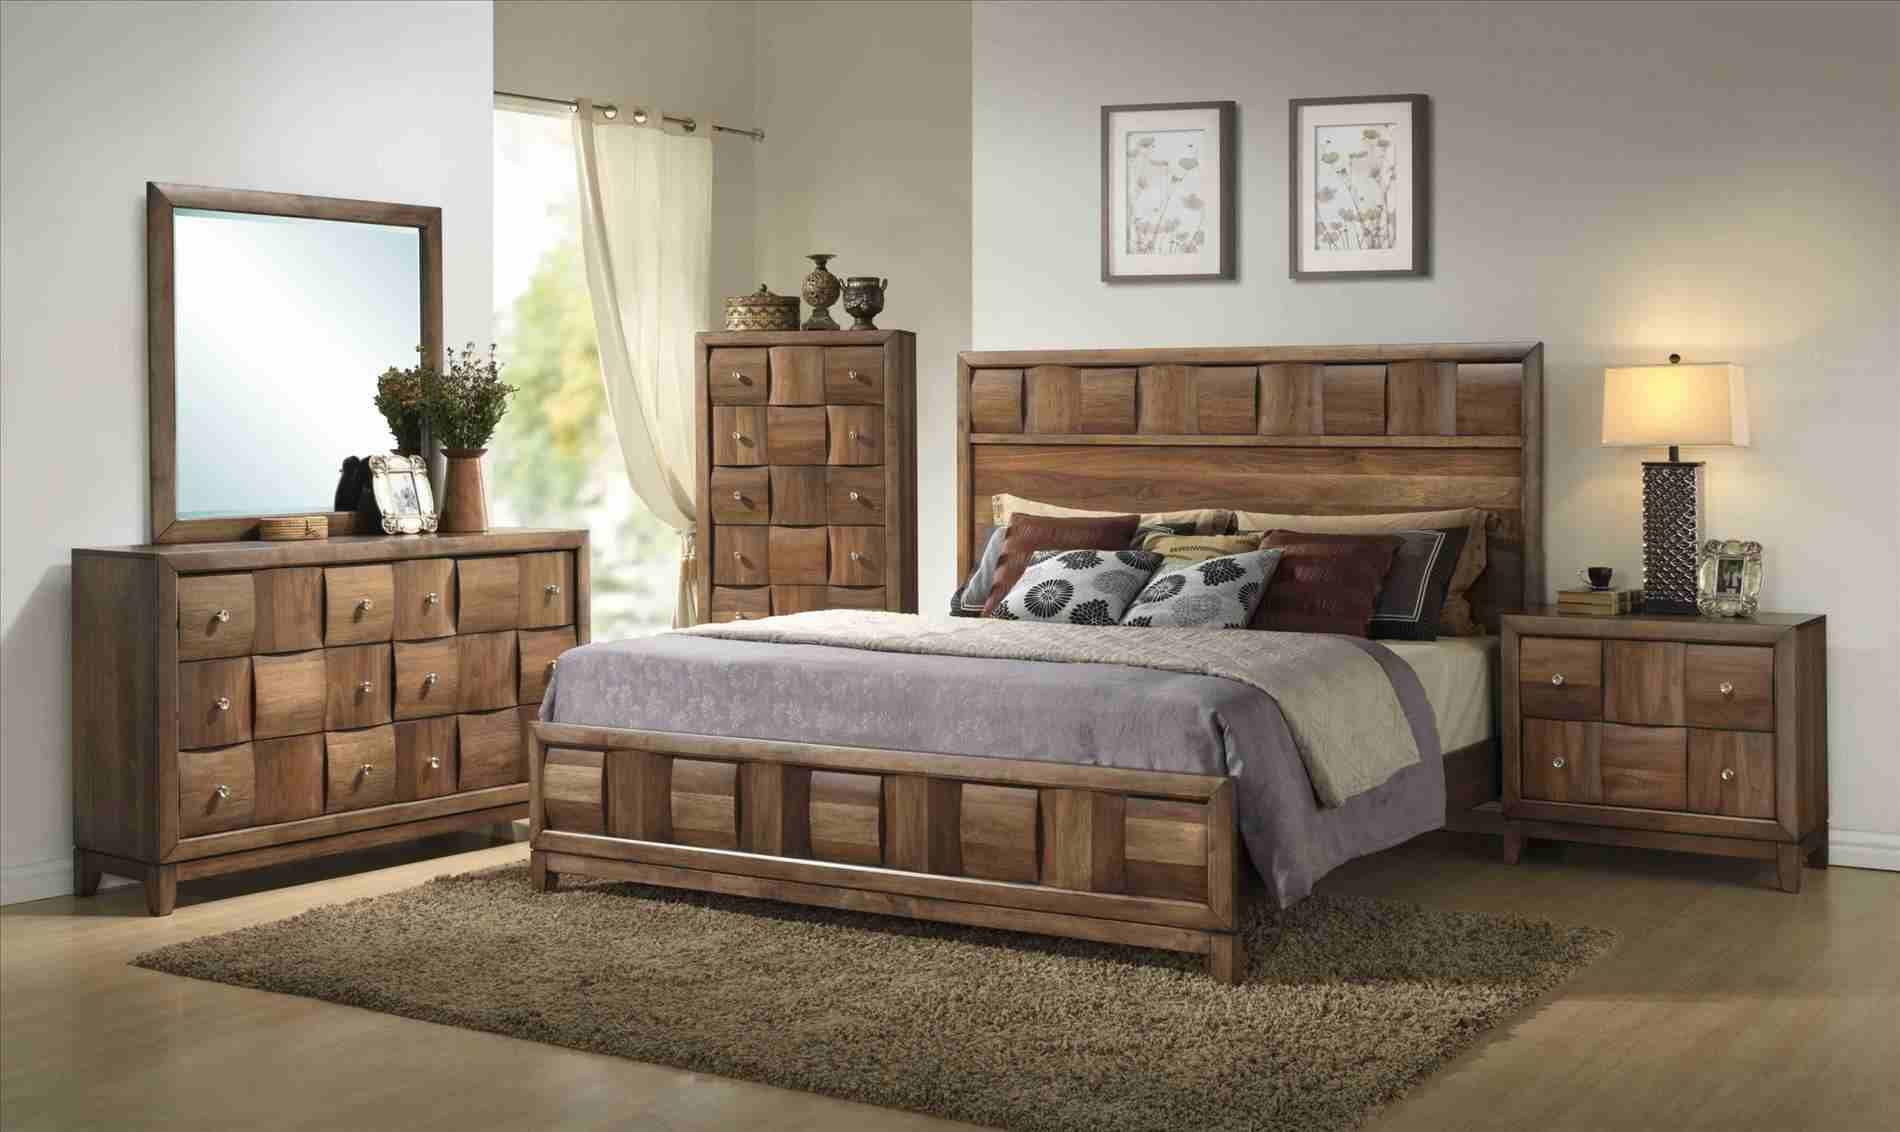 Solid Wood Bedroom Furniture Bedroom Cheap Solid Wood Bedroom Furniture Luxury Home Wood Bedroom Sets Oak Bedroom Furniture Sets Wood Bedroom Furniture Sets